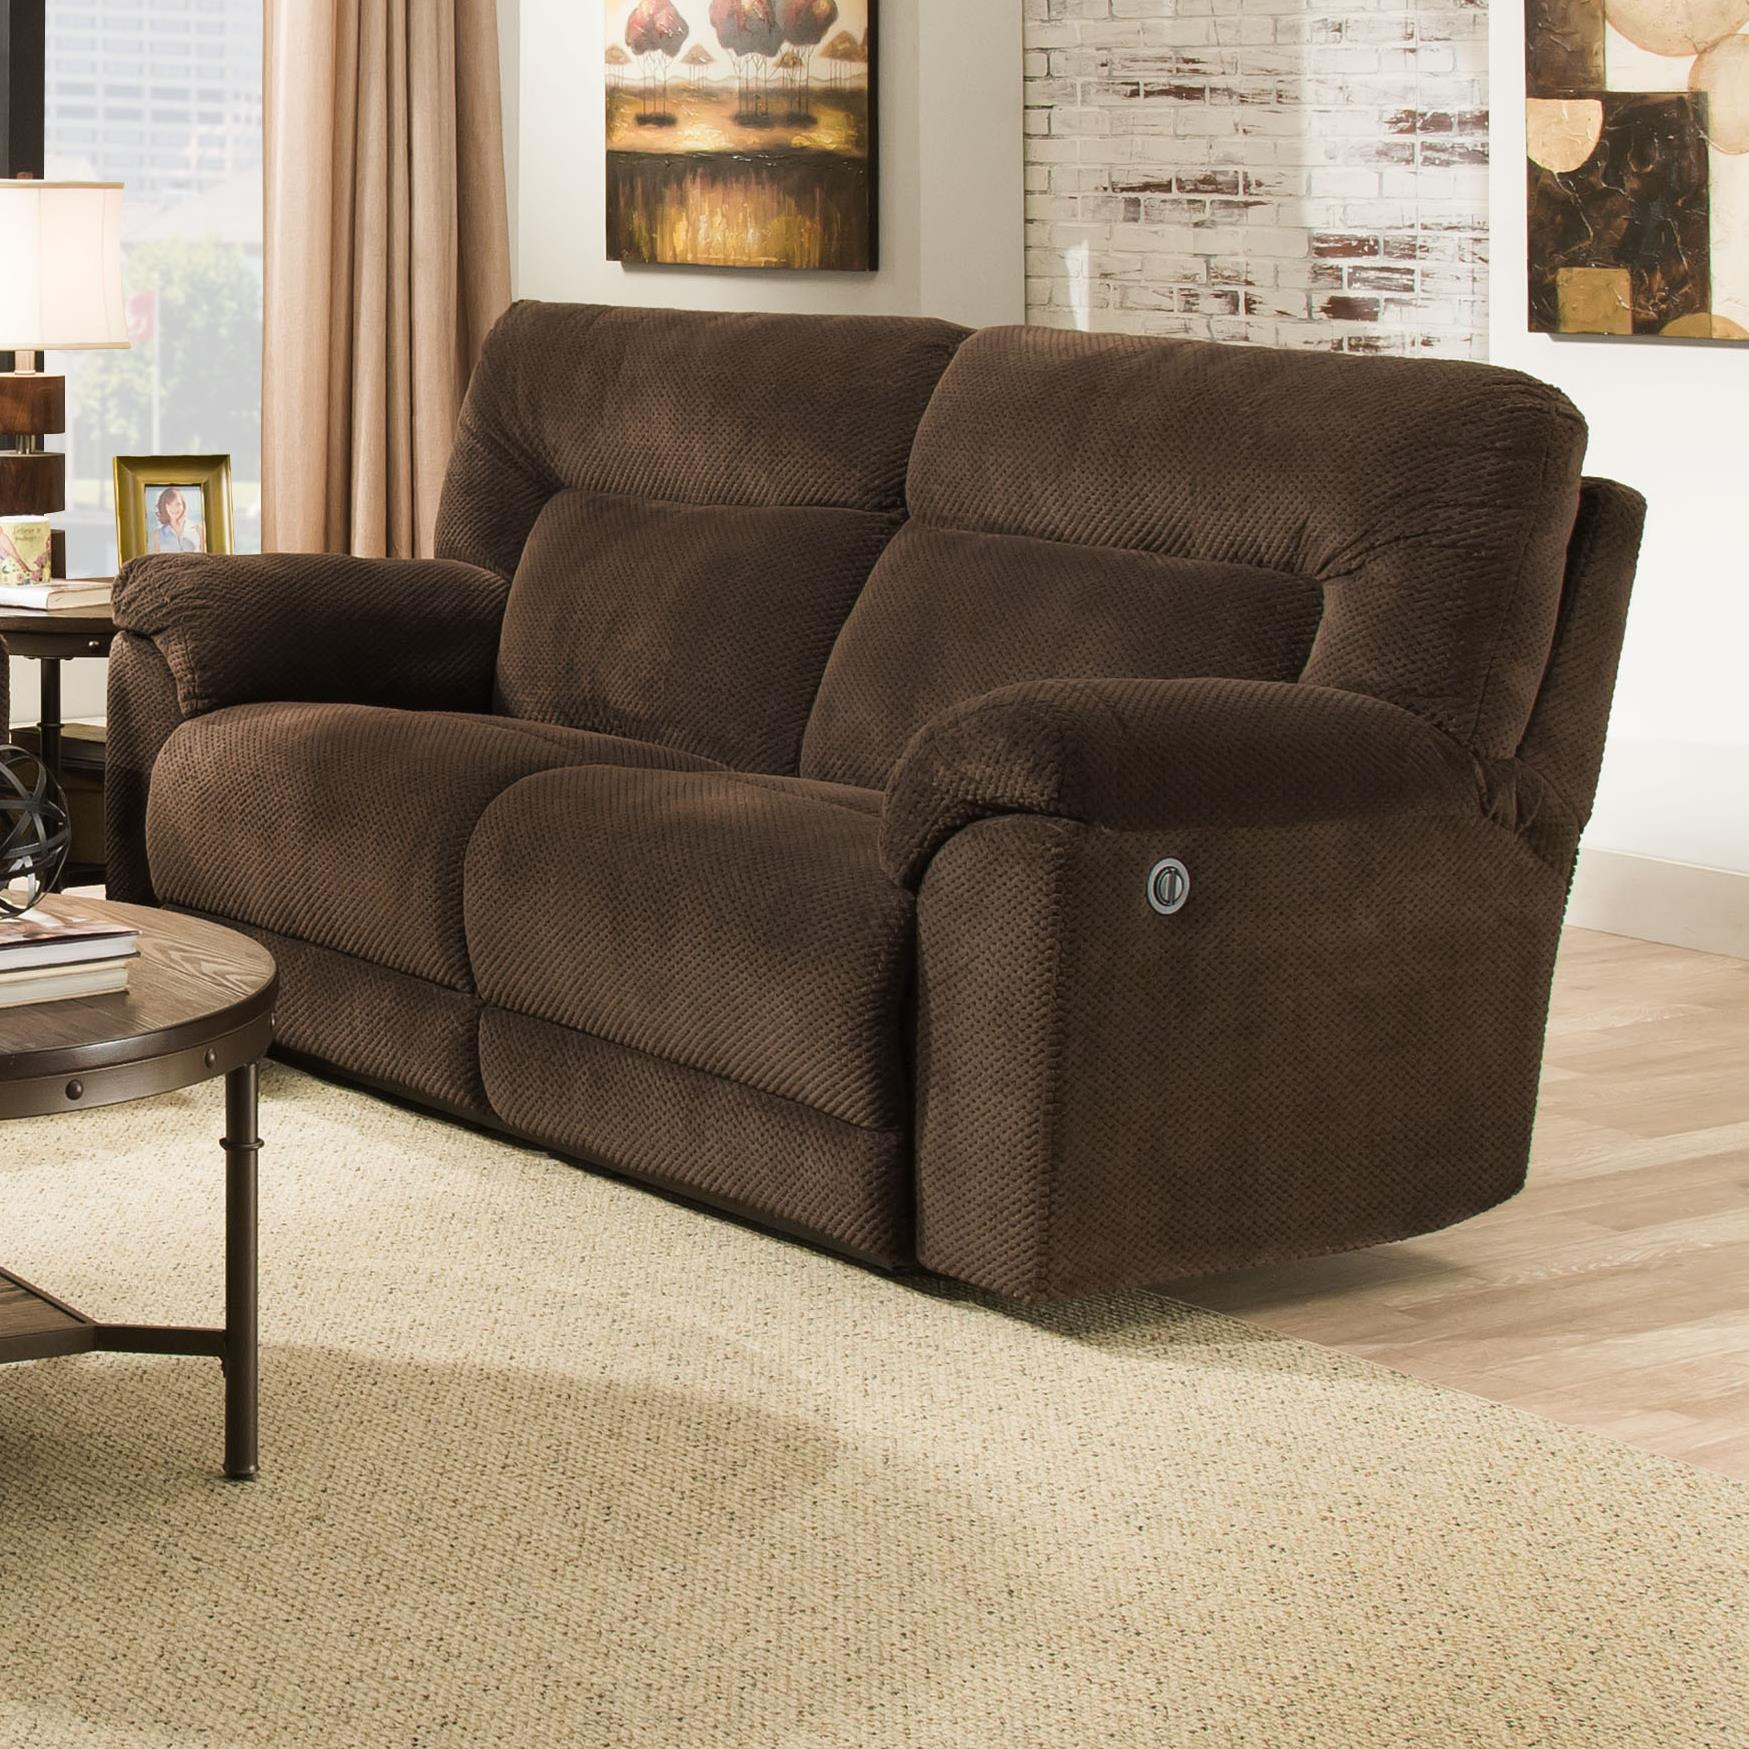 United Furniture Industries 50570 Double Motion Sofa - Item Number: 50570Sofa-MadChoc